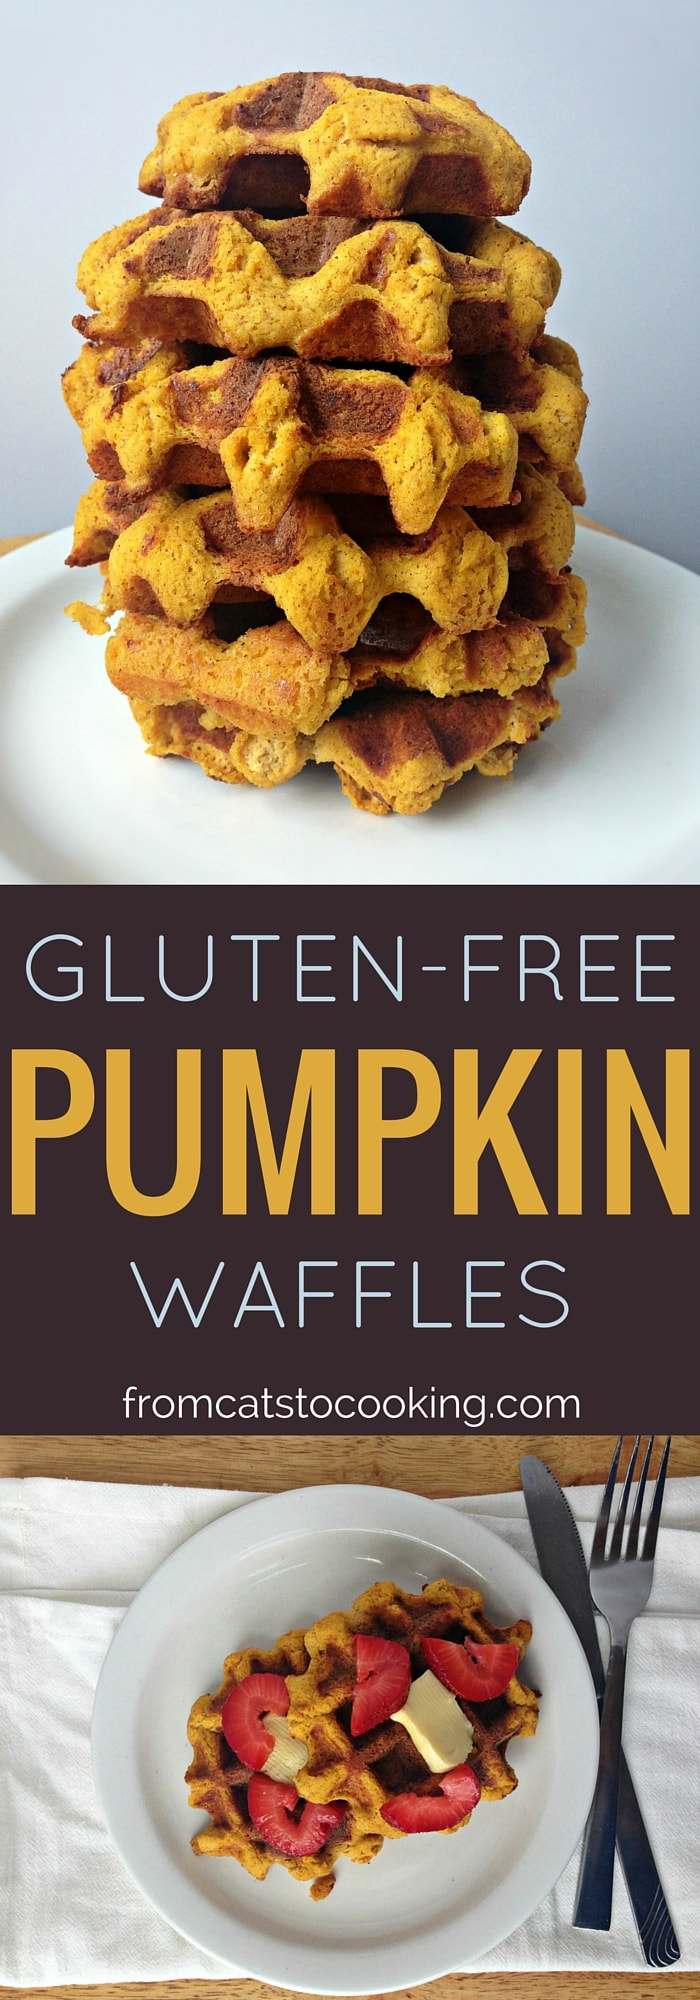 Gluten-free Pumpkin Waffles Recipe. Great for breakfast and brunch! Dairy-free, Gluten-free, Paleo| fromcatstocooking.com